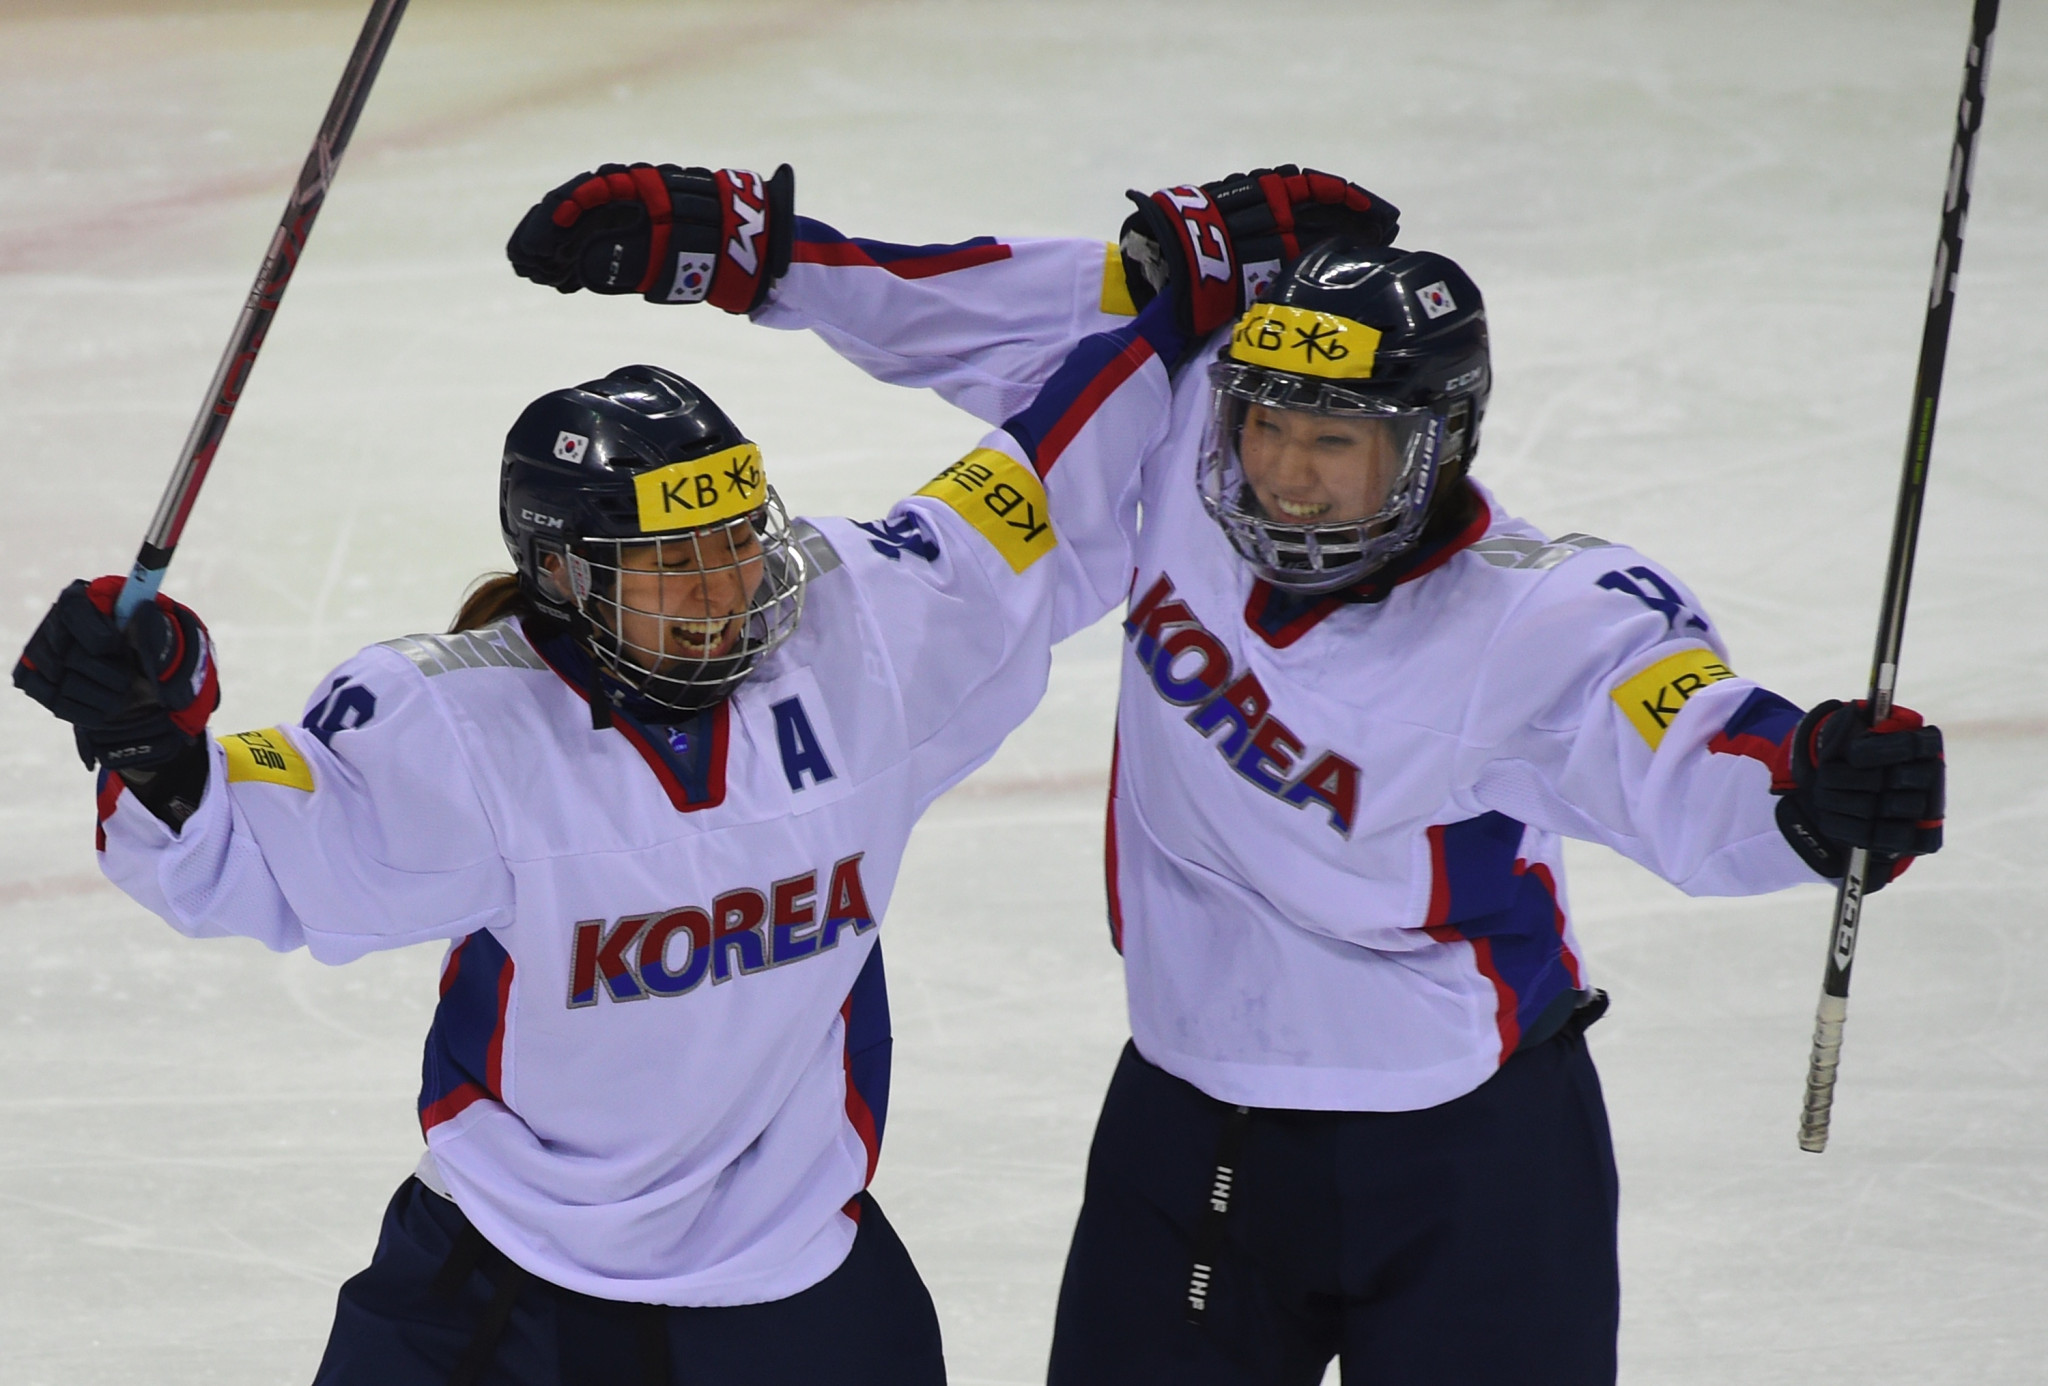 The South Korean women's ice hockey team could participate alongside North Korean players ©Getty Images